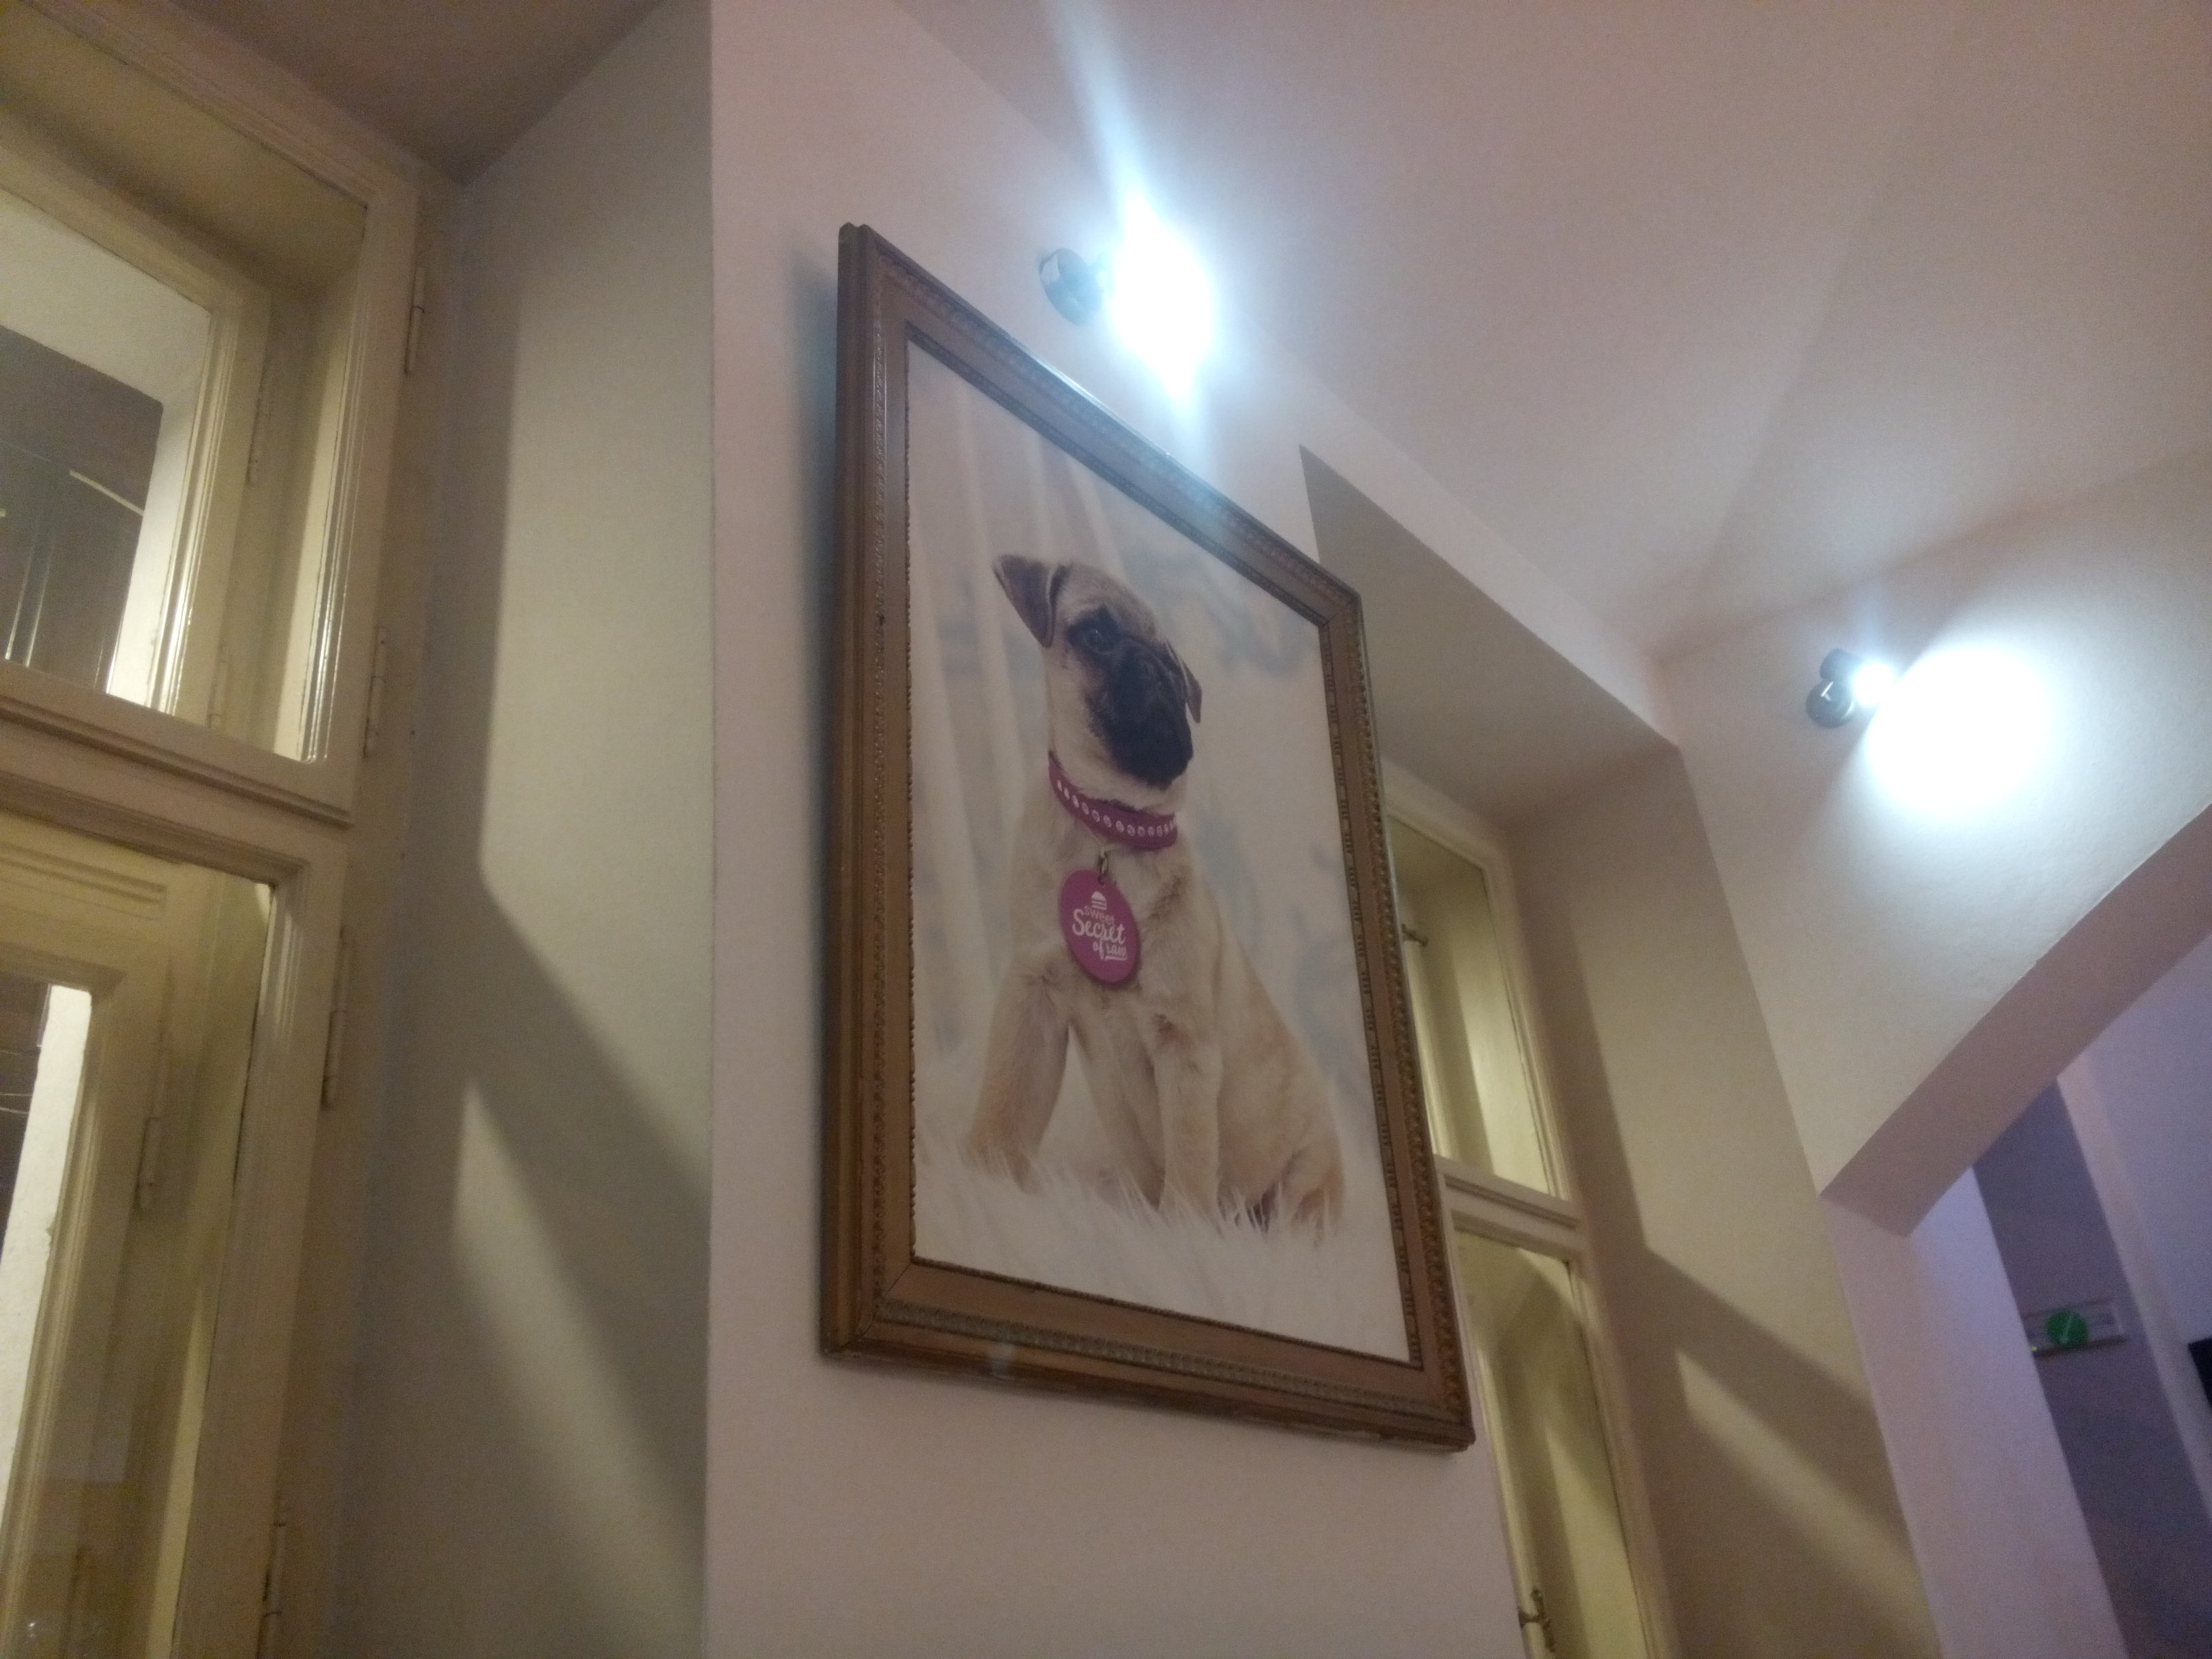 A framed picture of a regal looking pug wearing a pink collar